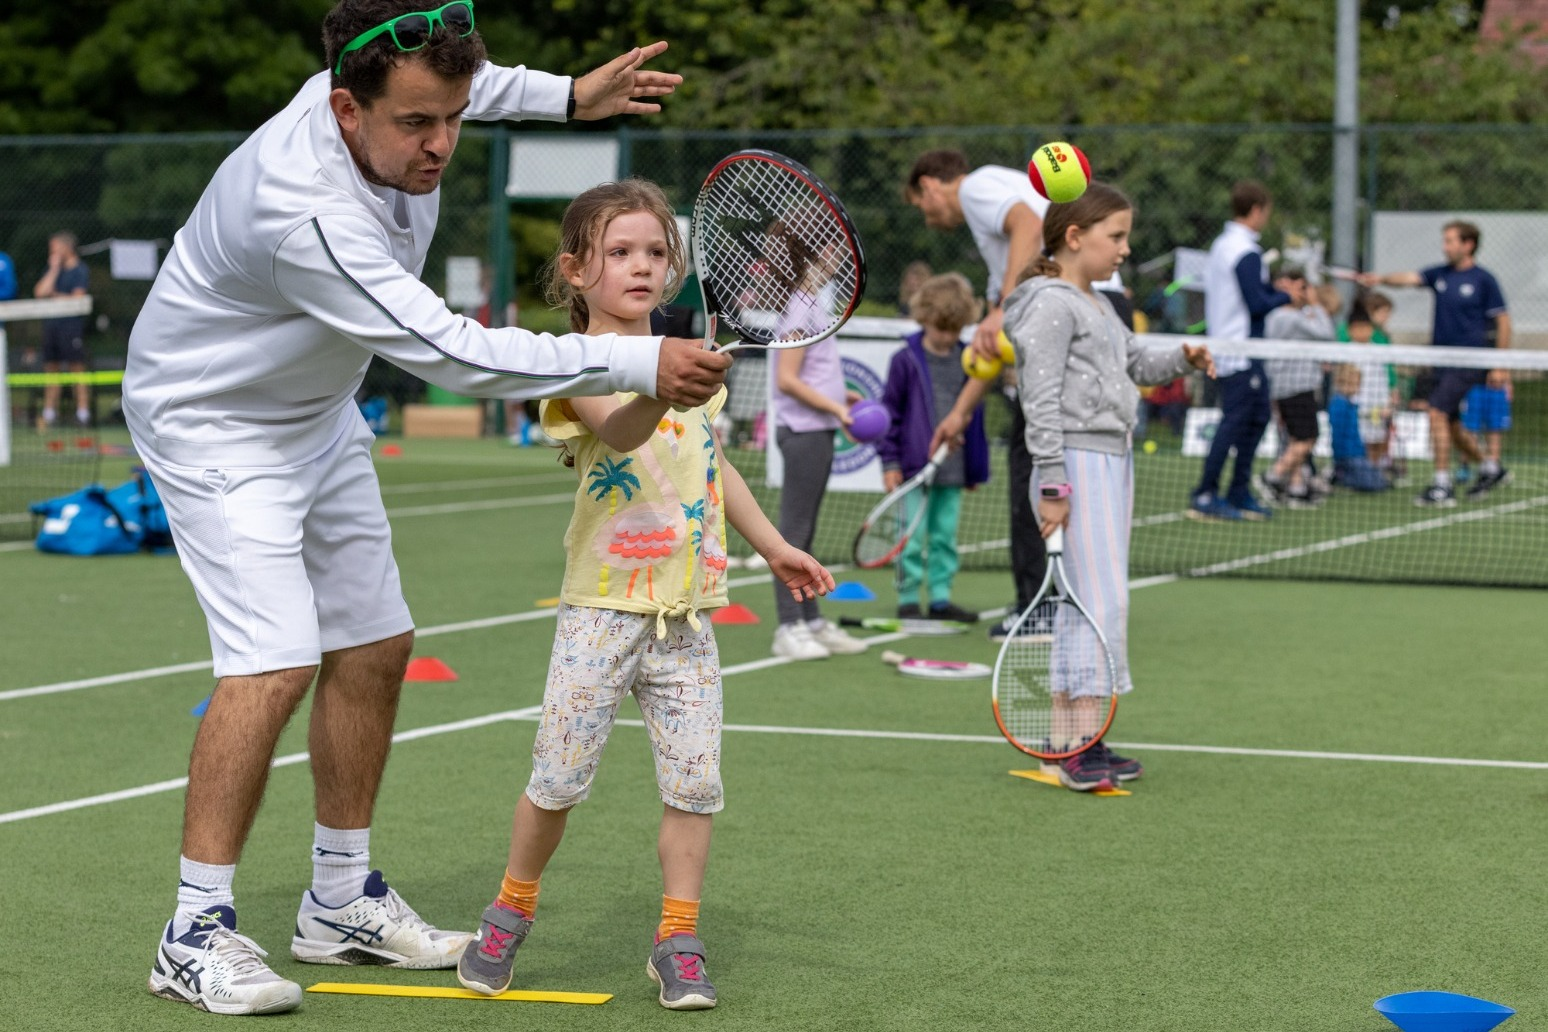 Hundreds of people gather for Thank You Day event at Wimbledon.